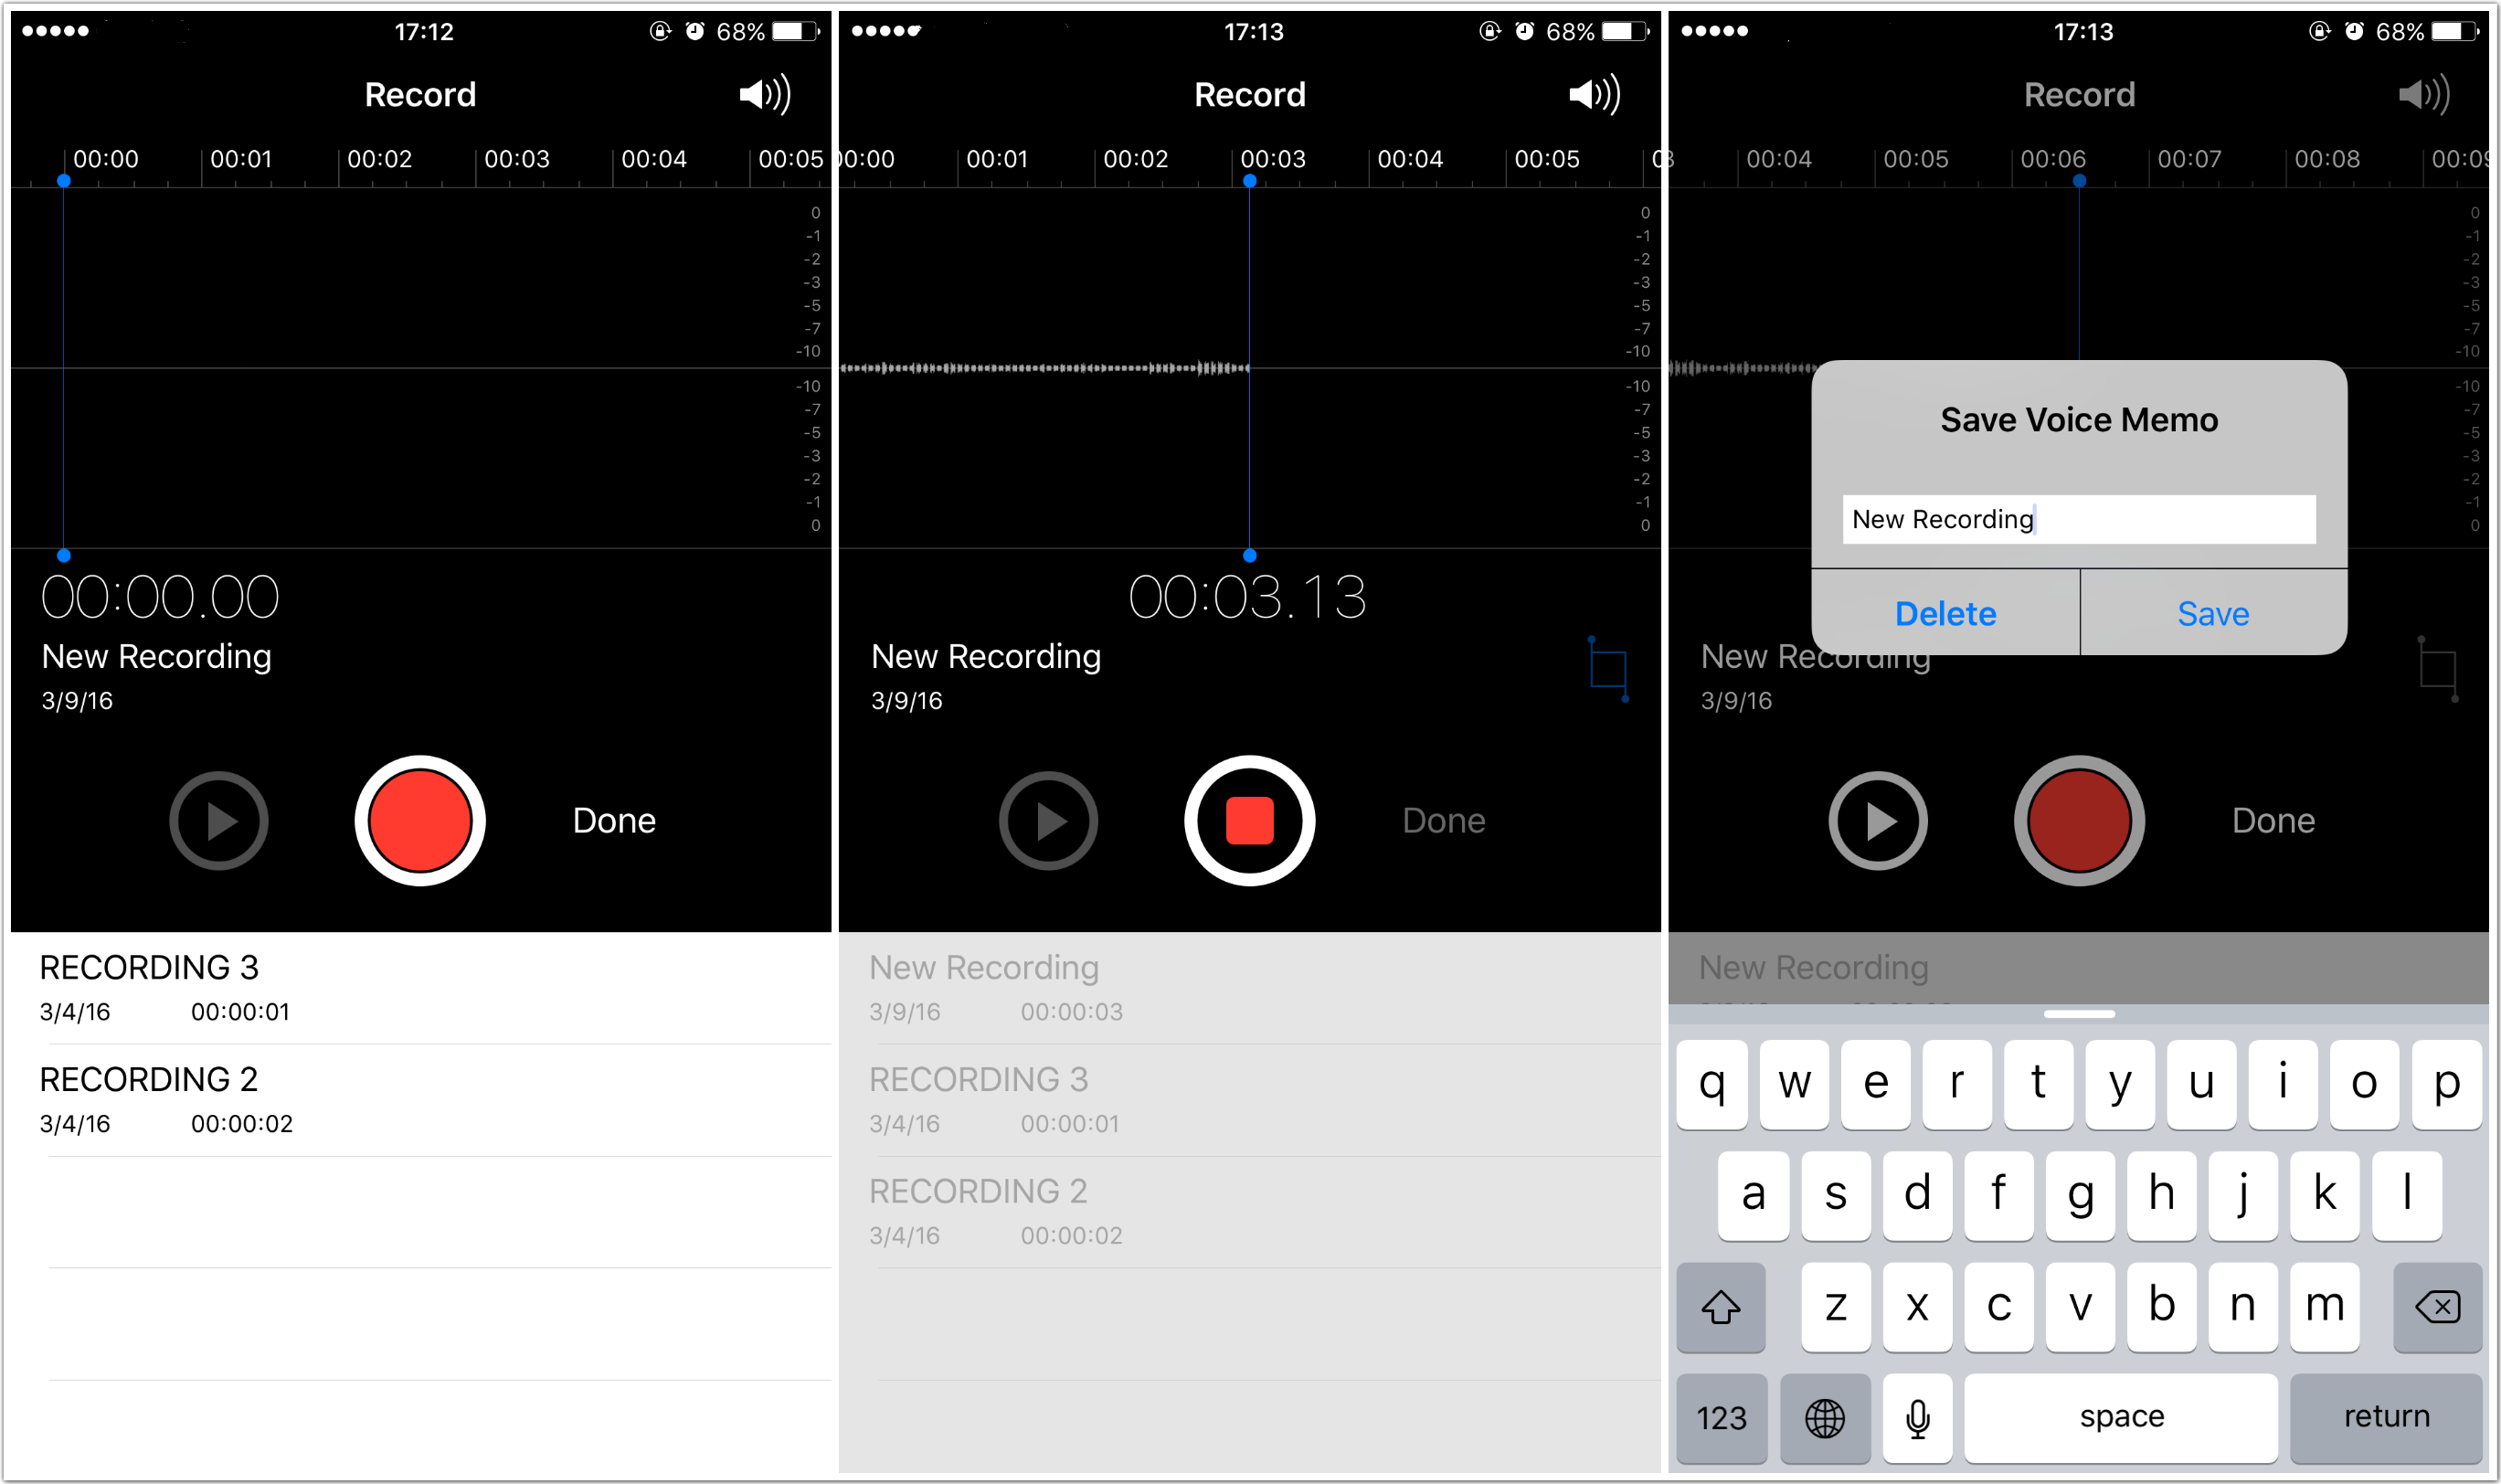 How to Record a Voice Memo on iPhone 6s